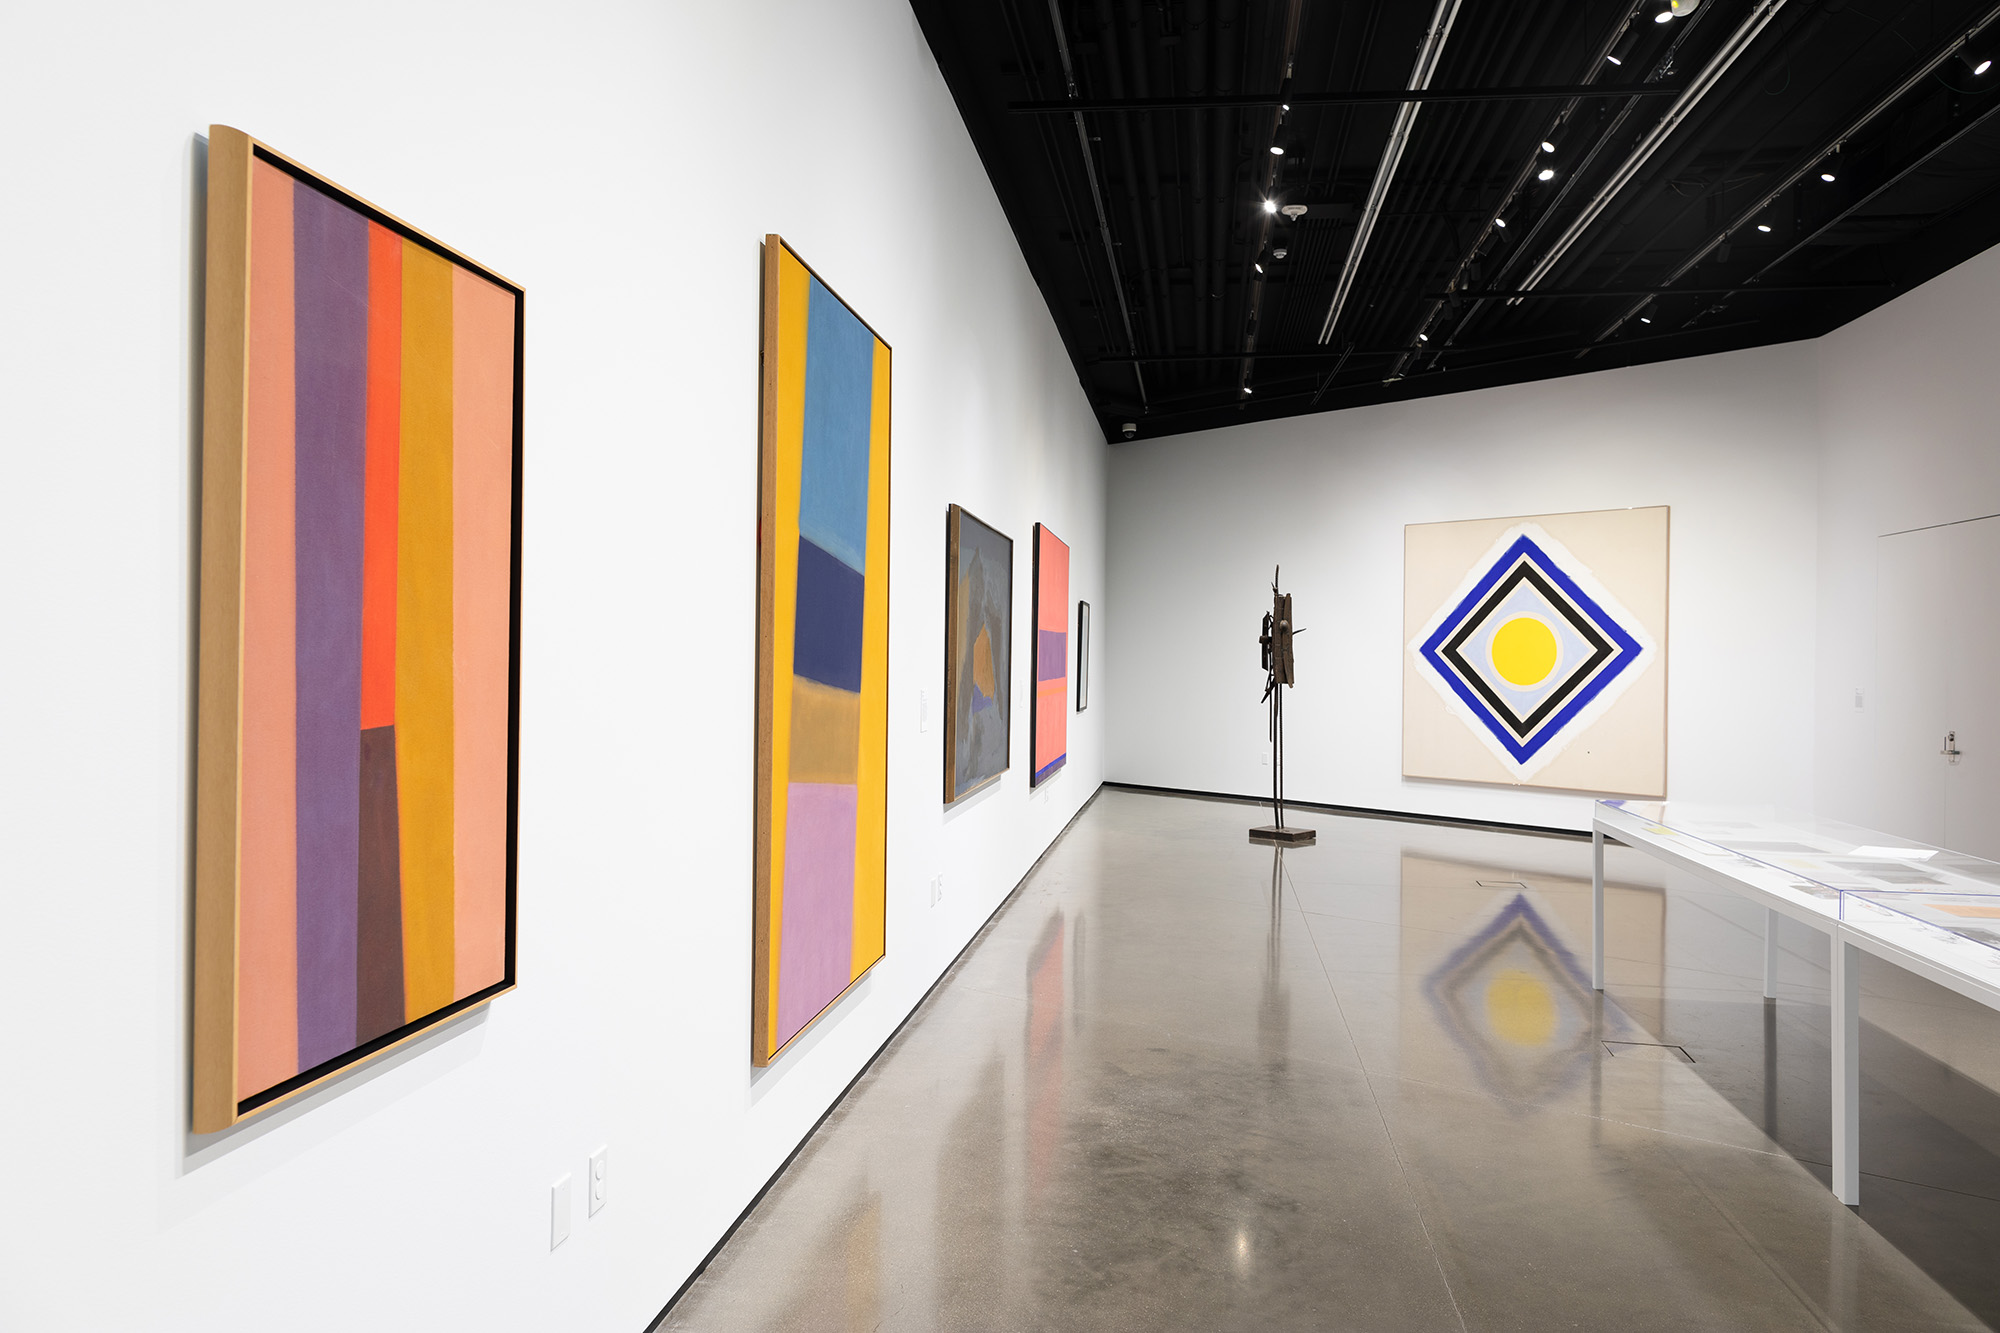 <i>Charles Pollock: Modernism in the Making</i>, installation view at the Eli and Edythe Broad Art Museum at Michigan State University, 2018. Photo: Eat Pomegranate Photography